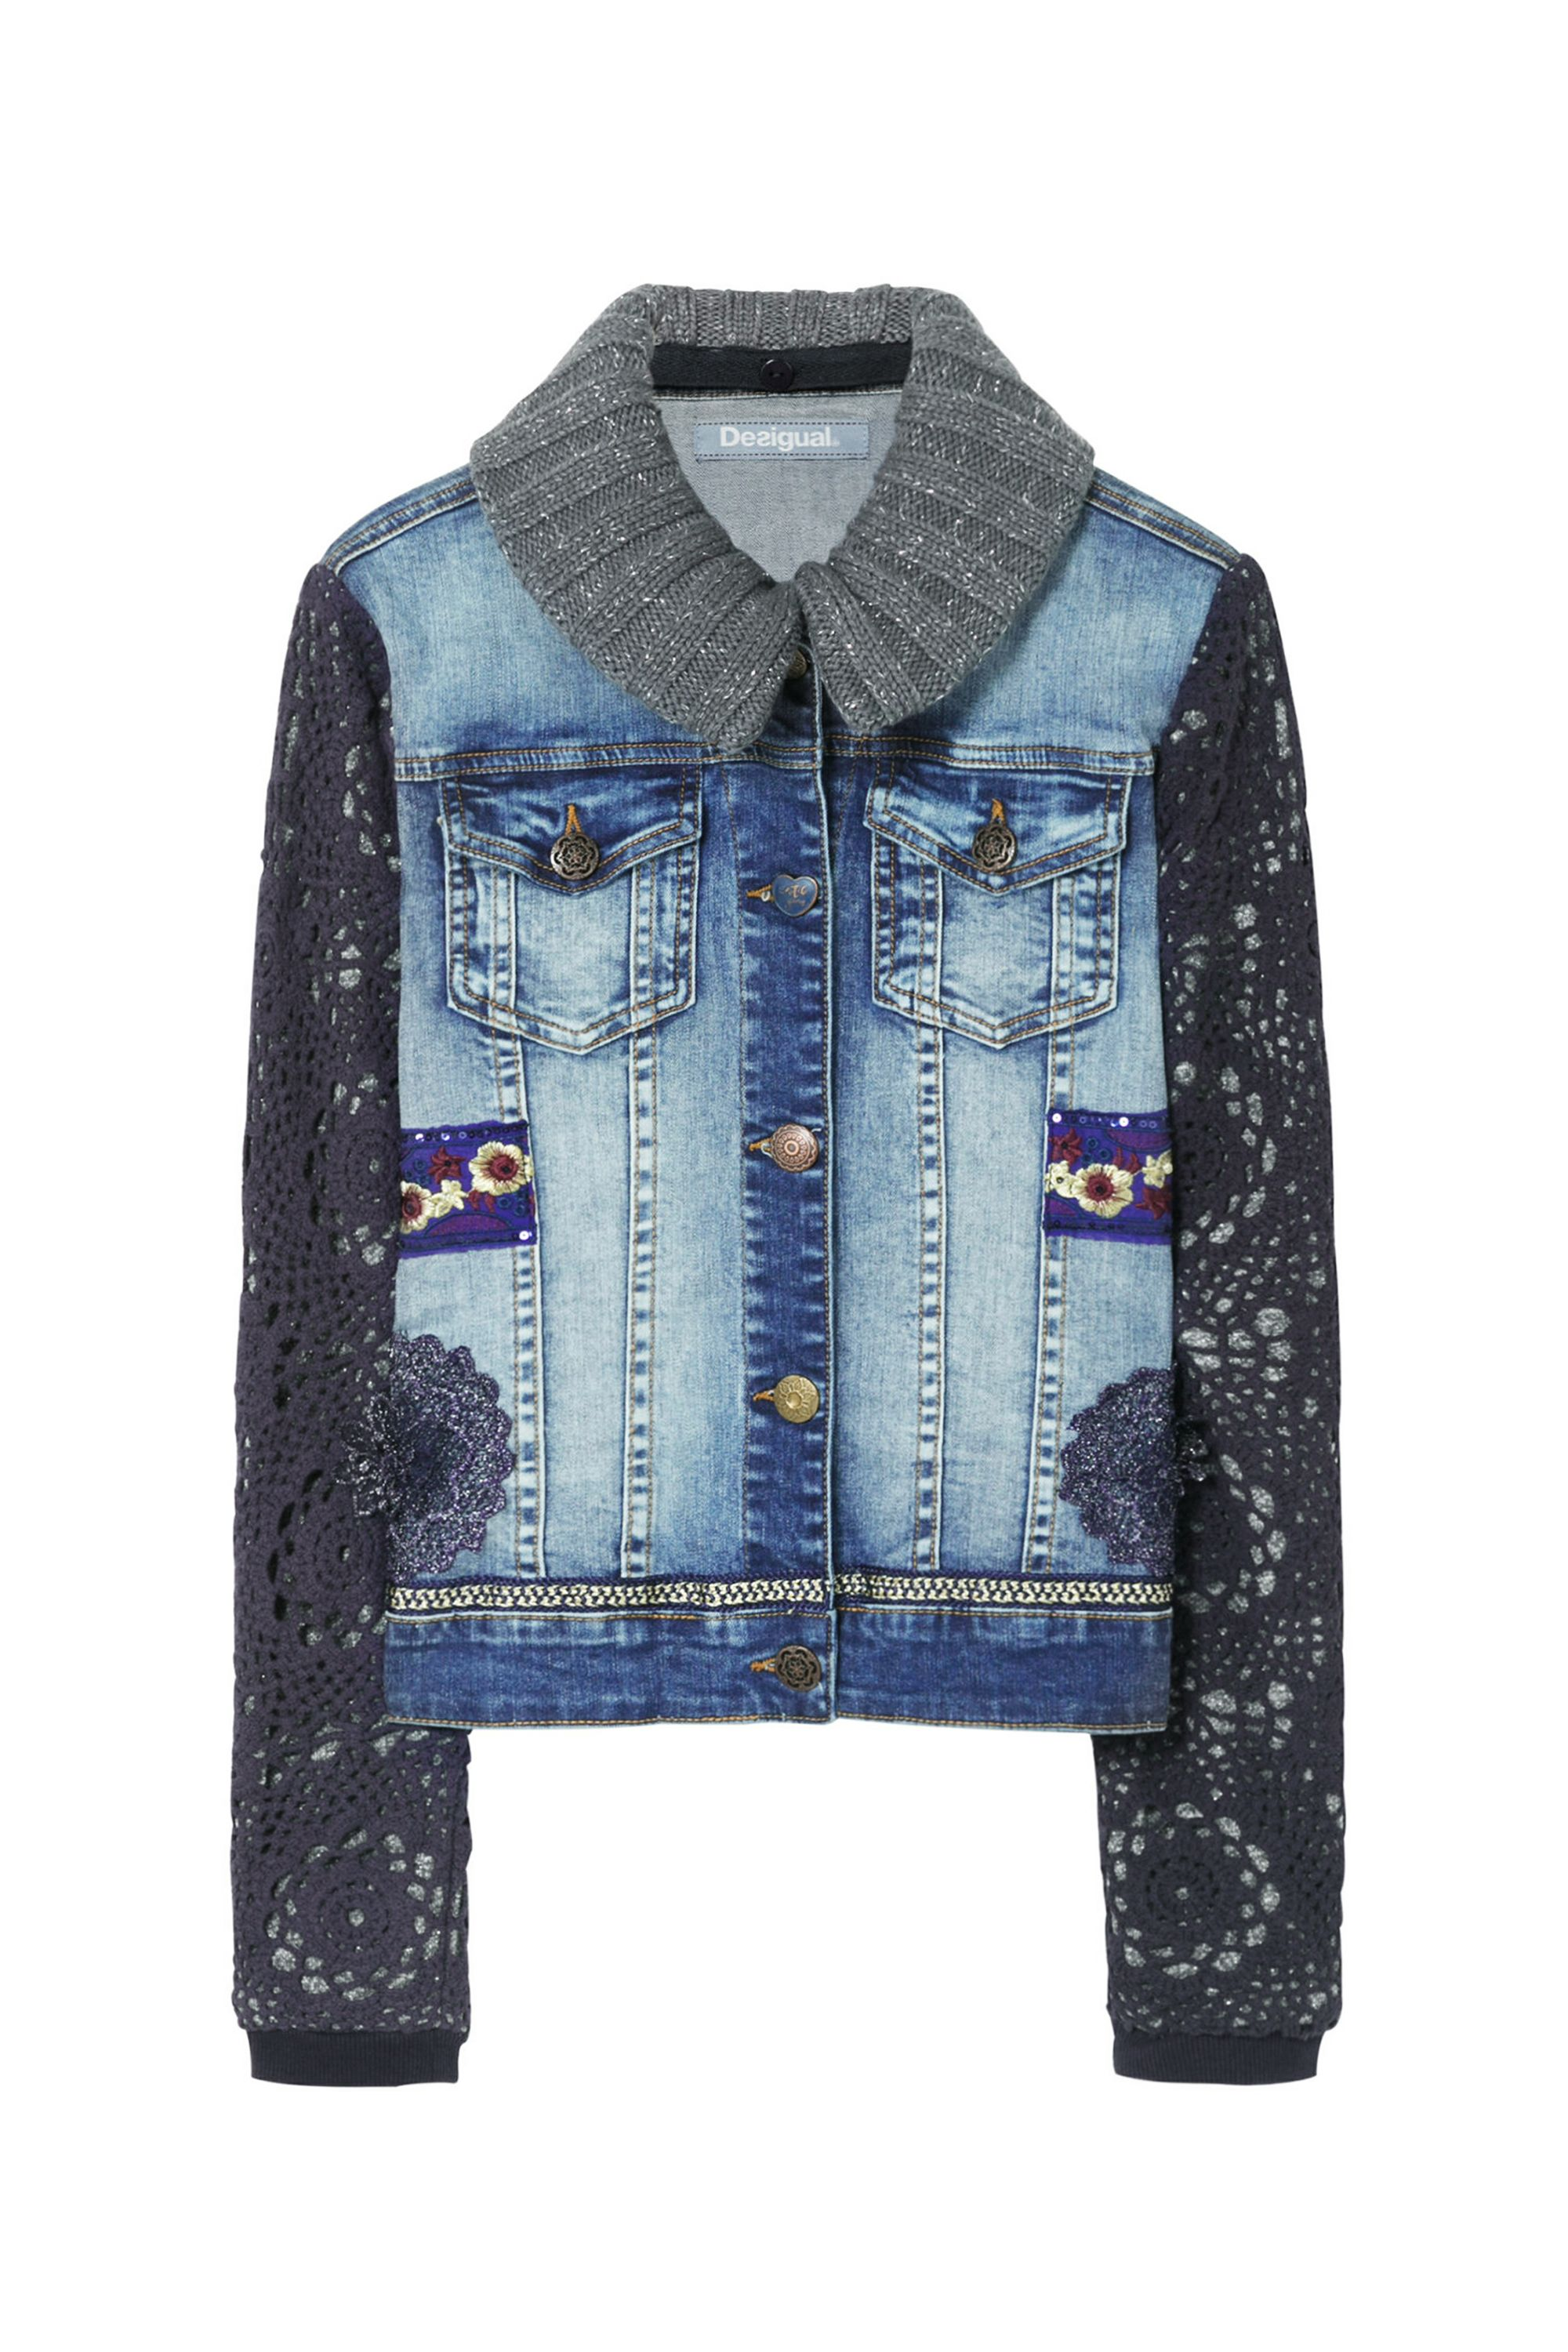 Desigual Jacket Exotic, Blue